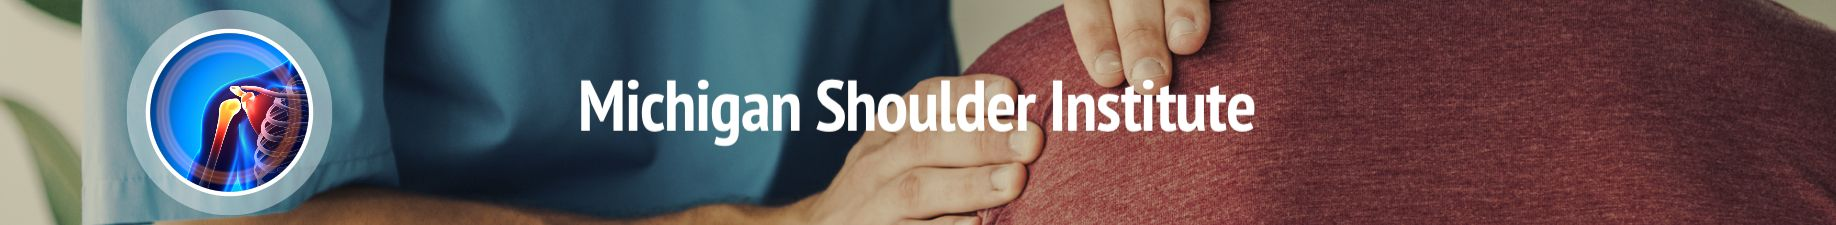 For all of your shoulder treatment needs in the Muskegon & Grand Haven, MI areas be sure to contact the experts at Orthopaedic Associates of Muskegon!